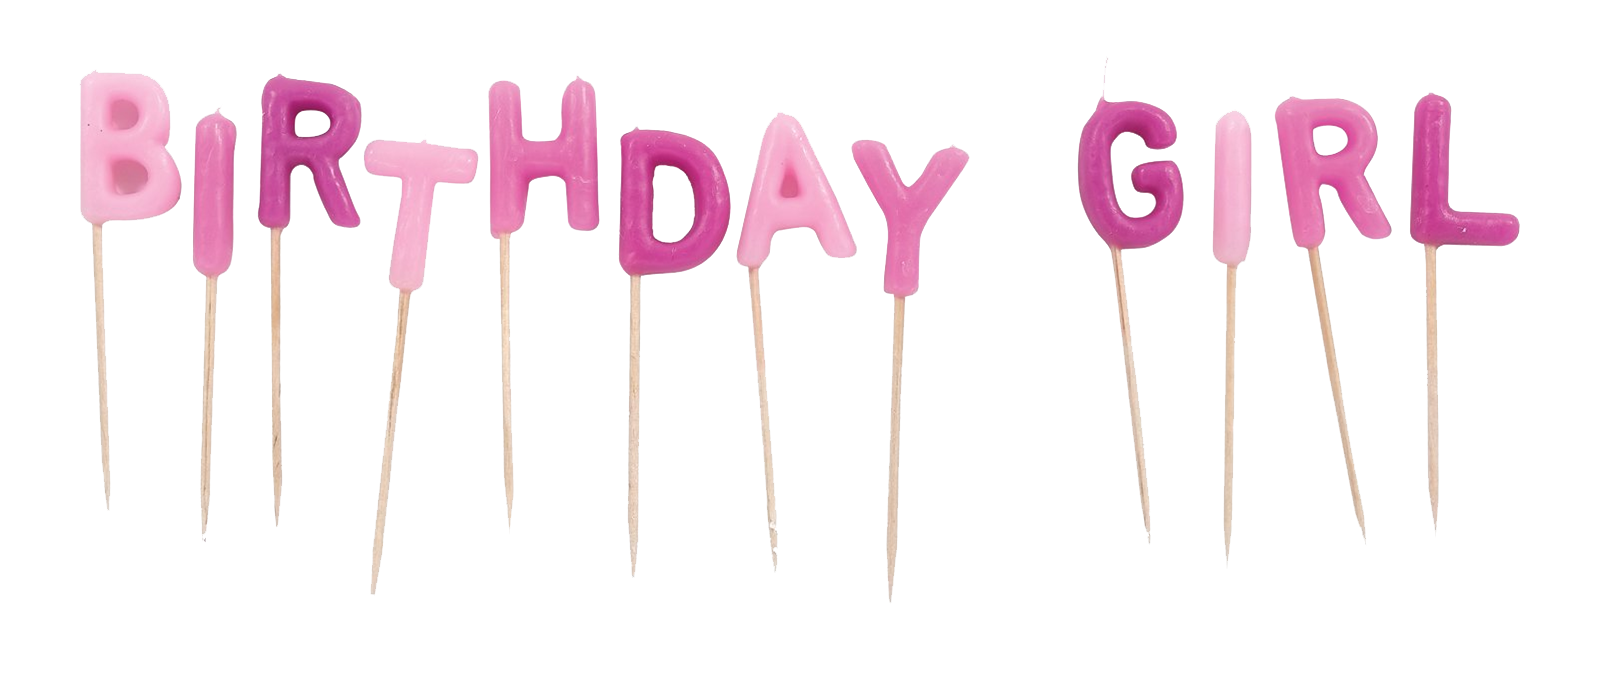 Download Birthday Candles Png Clipart HQ PNG Image ...